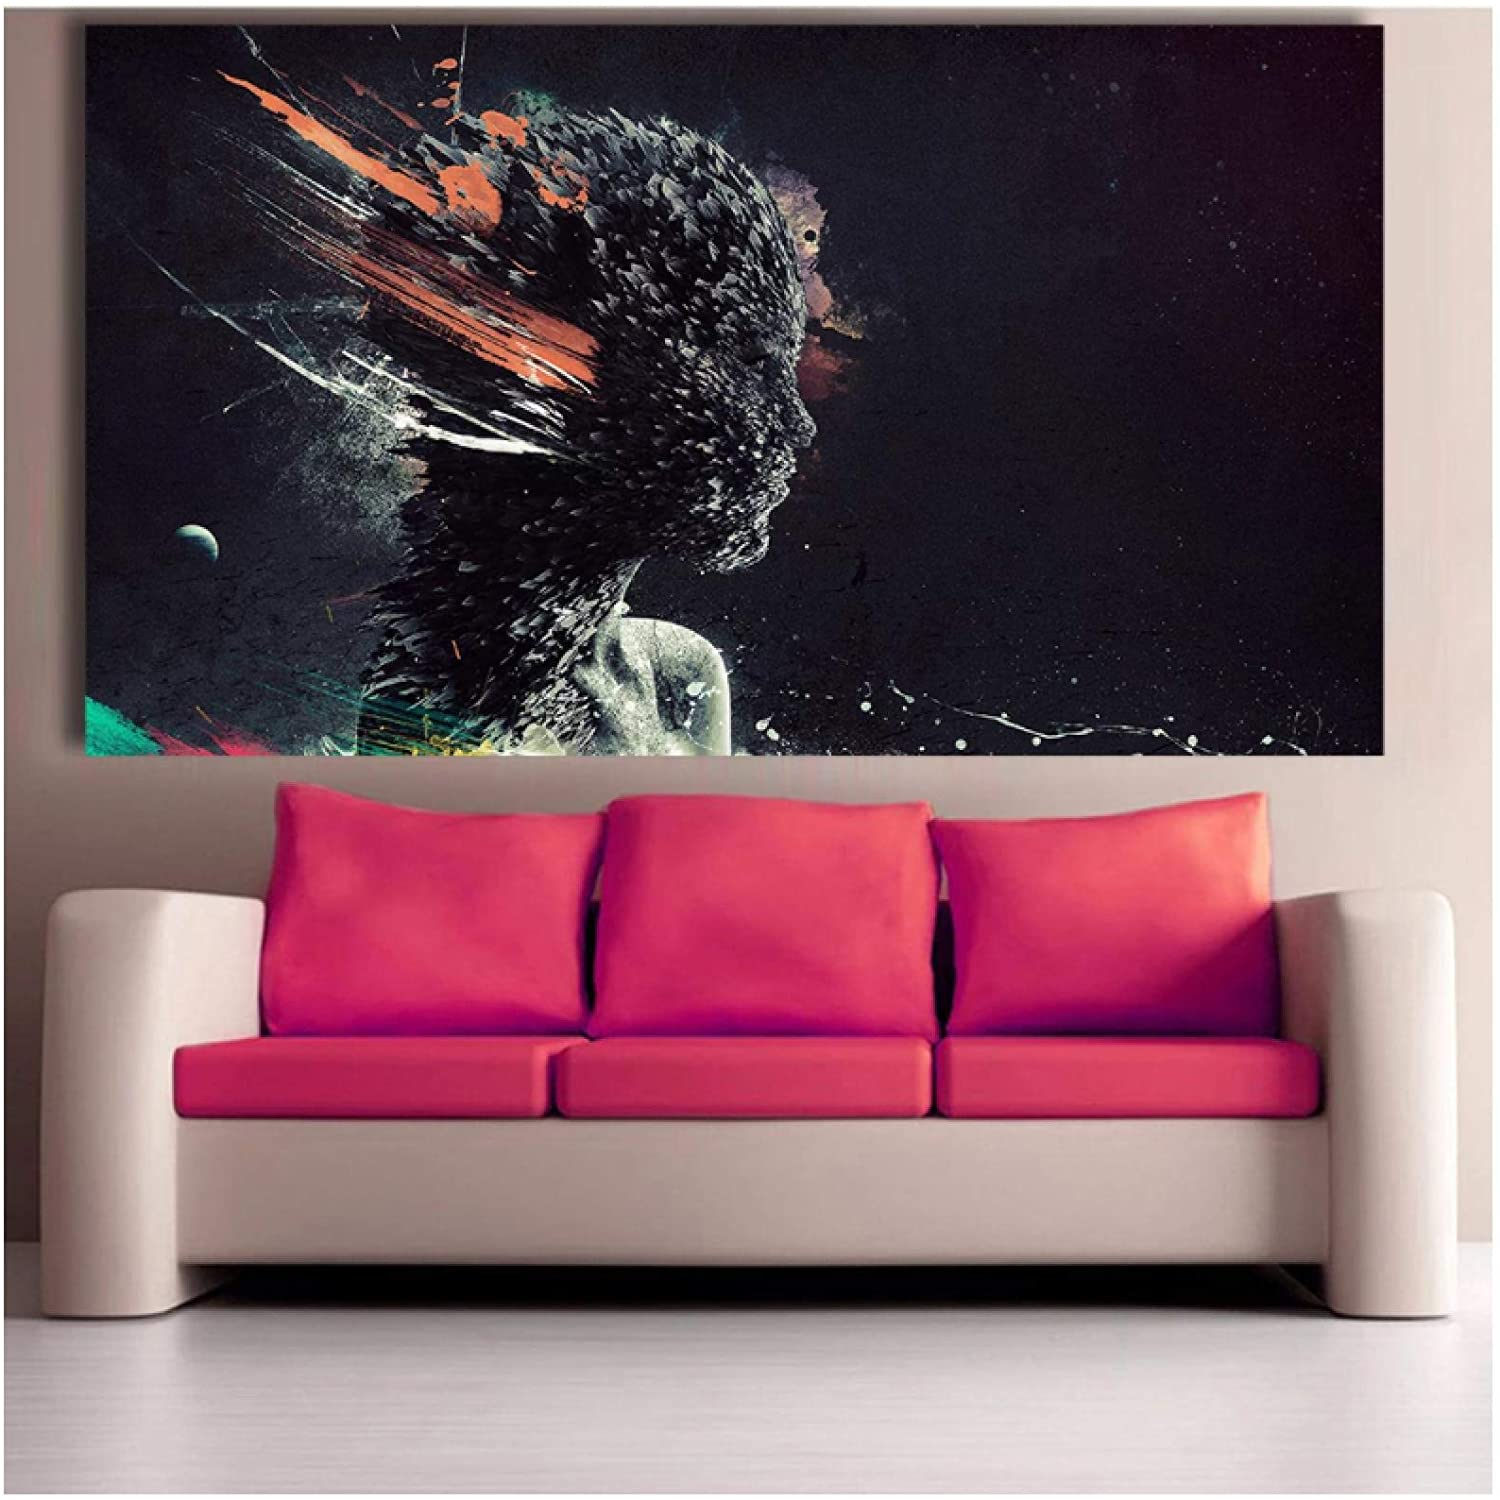 Wall Art ZXYFBH Wall Art Dog Painting Canvas Prints Picture Office Decoration Oil Painting Modern Canvas Paintings Poster 23.6x31.5in(60x80cm) x1pcs No Frame